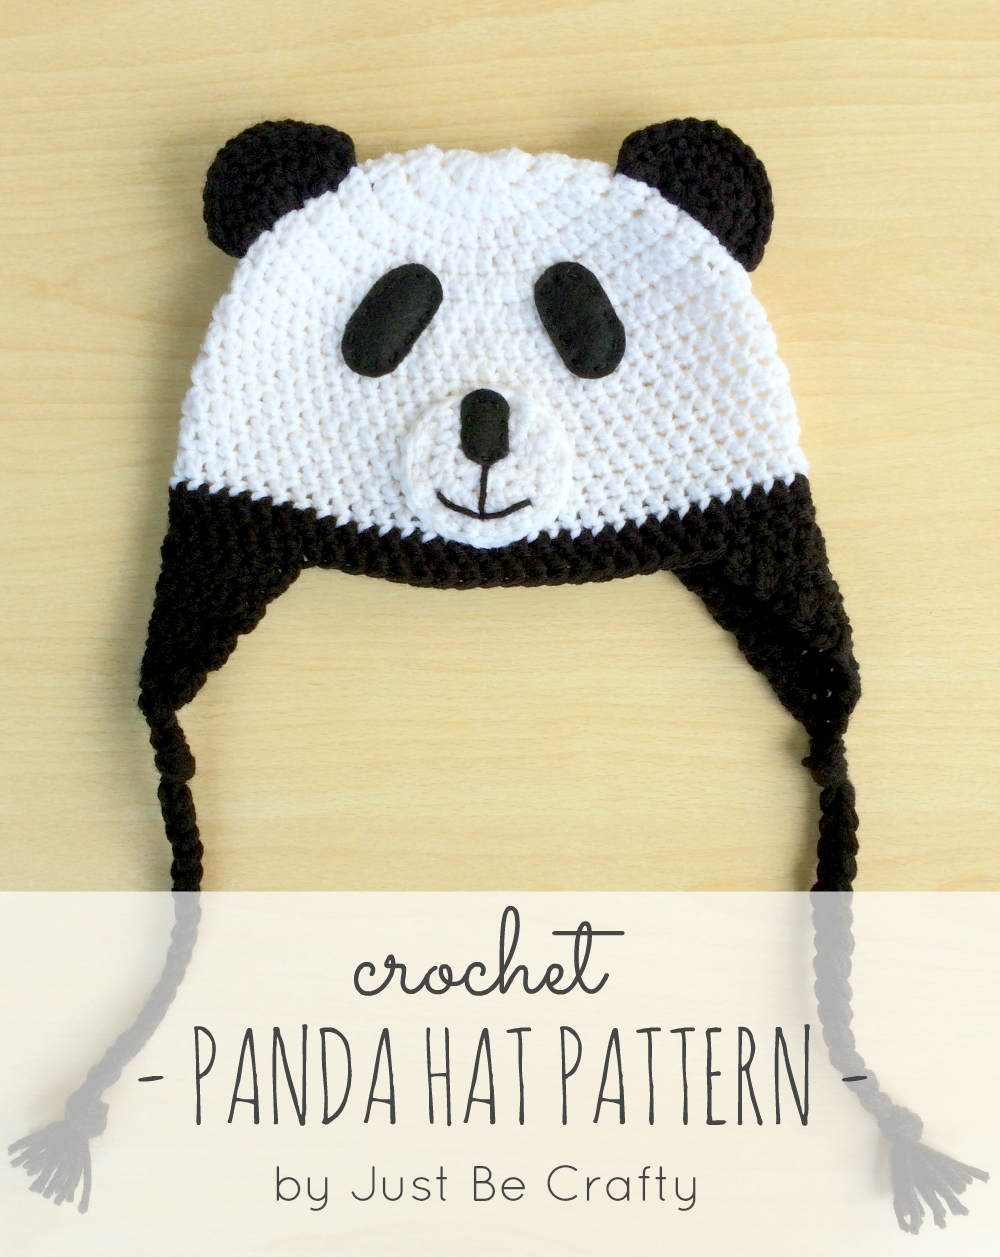 NEW PATTERN!! Crochet Panda Hat! - Just Be Crafty